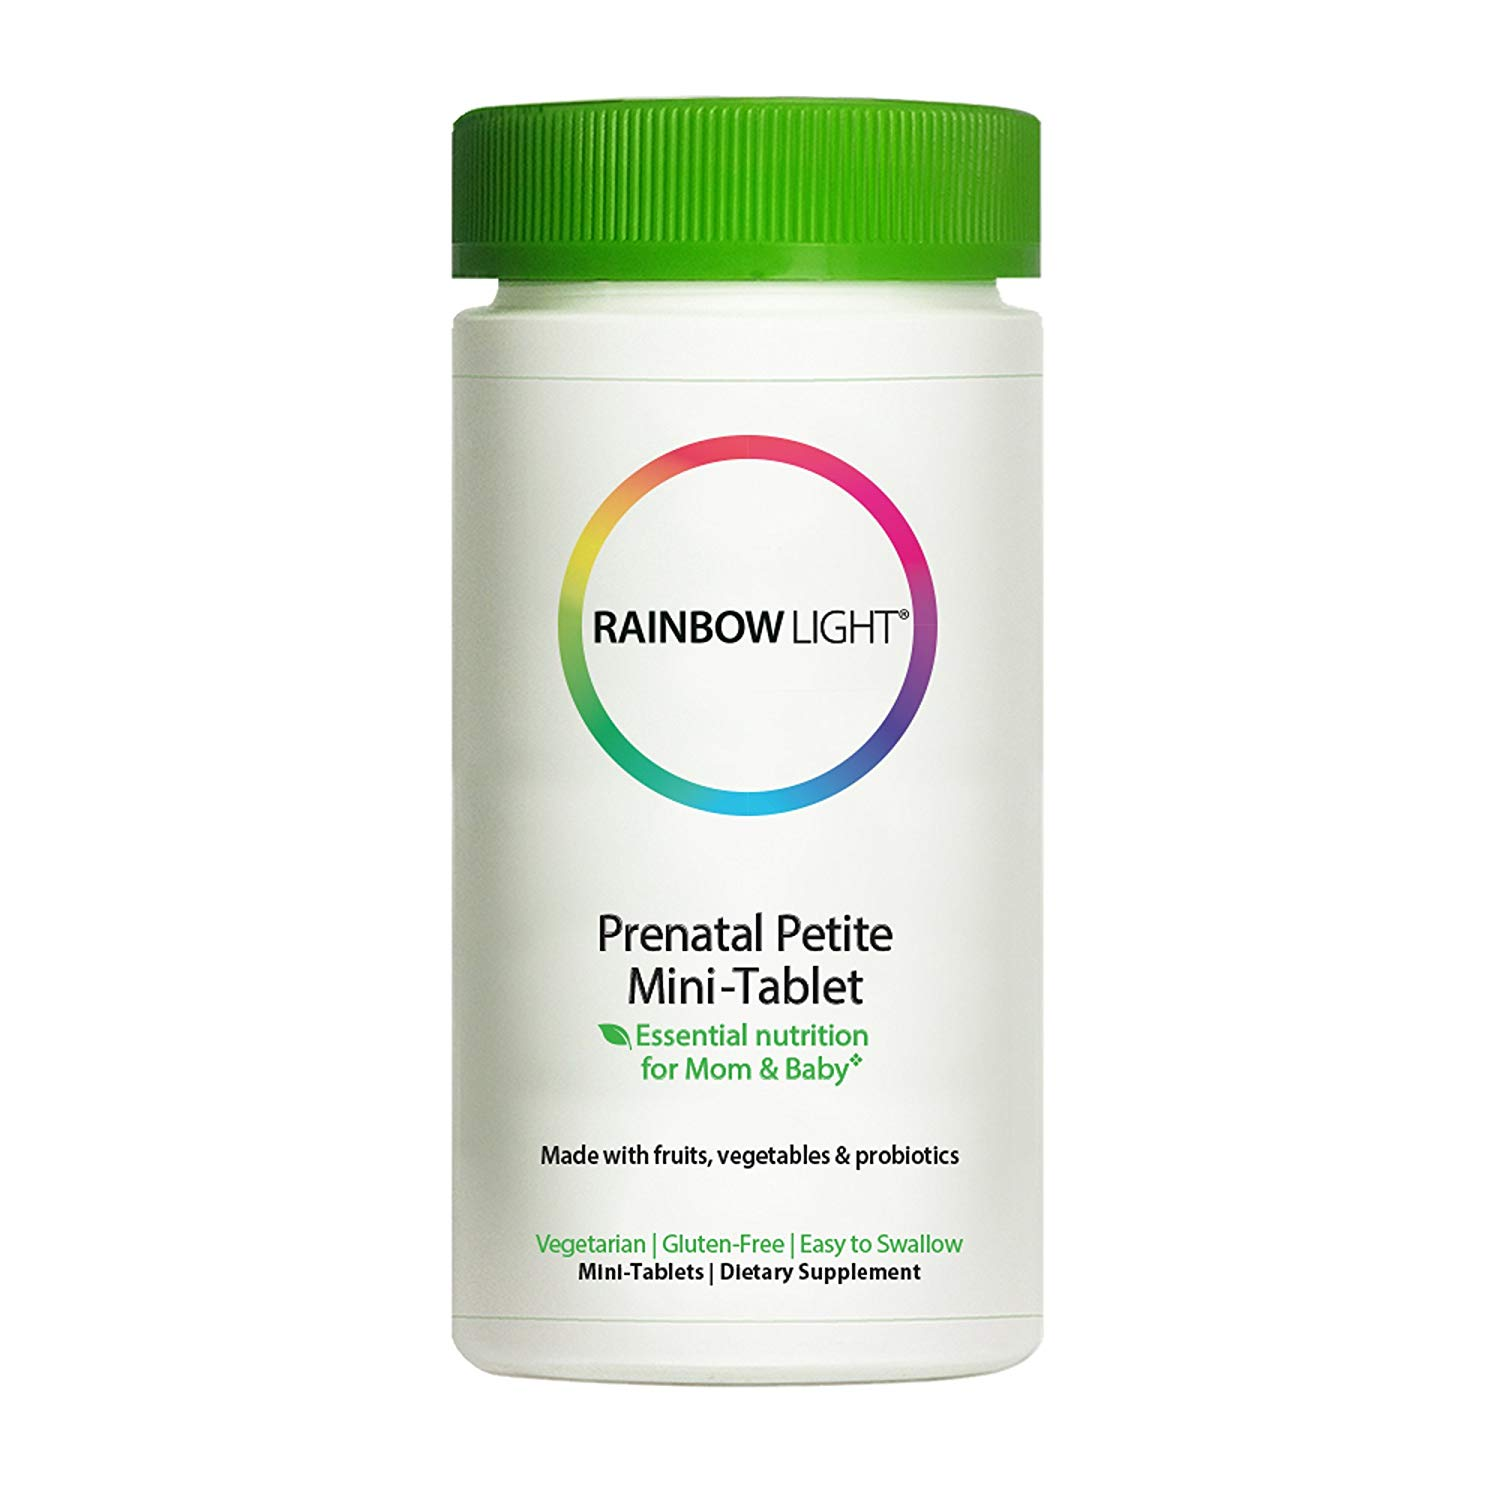 Rainbow Light Prenatal Petite Mini-Tab Multivitamin